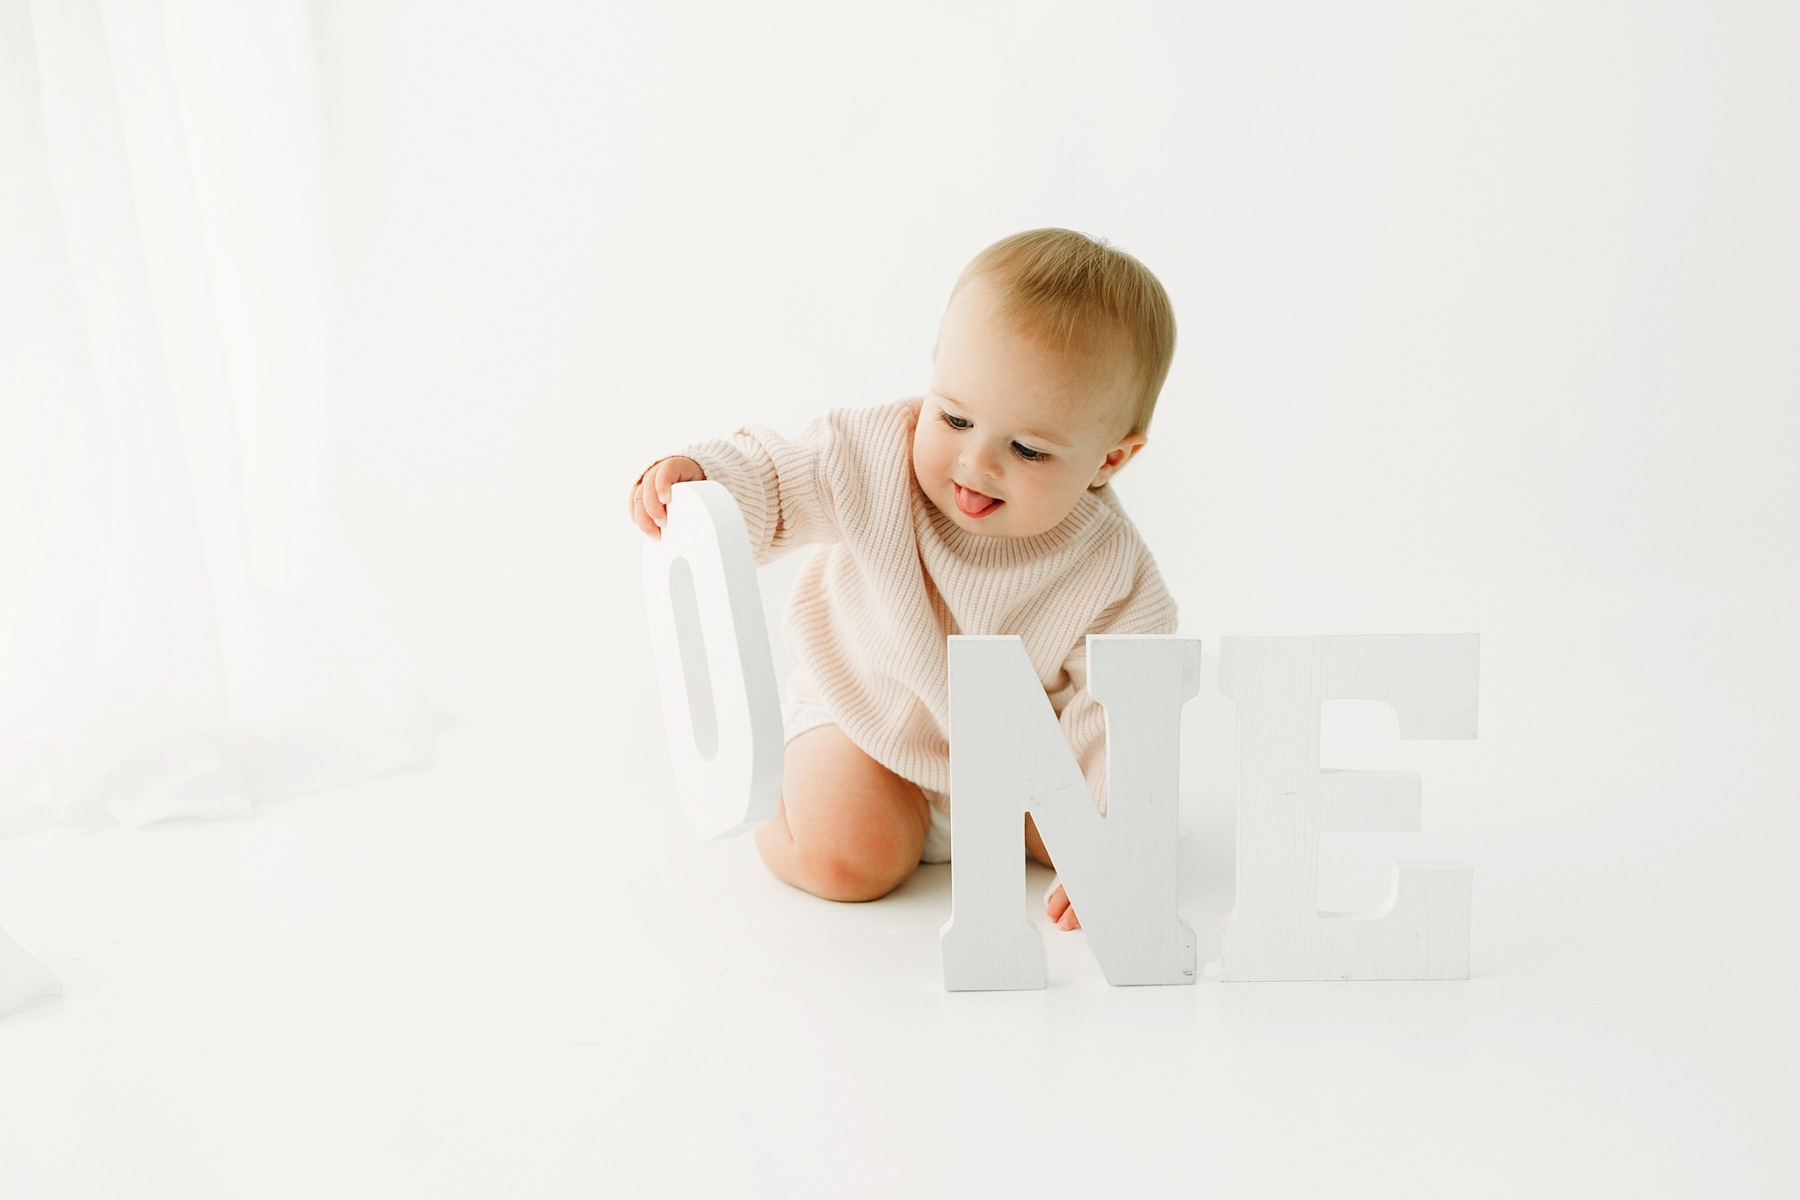 baby-photography-studio-pictures_3